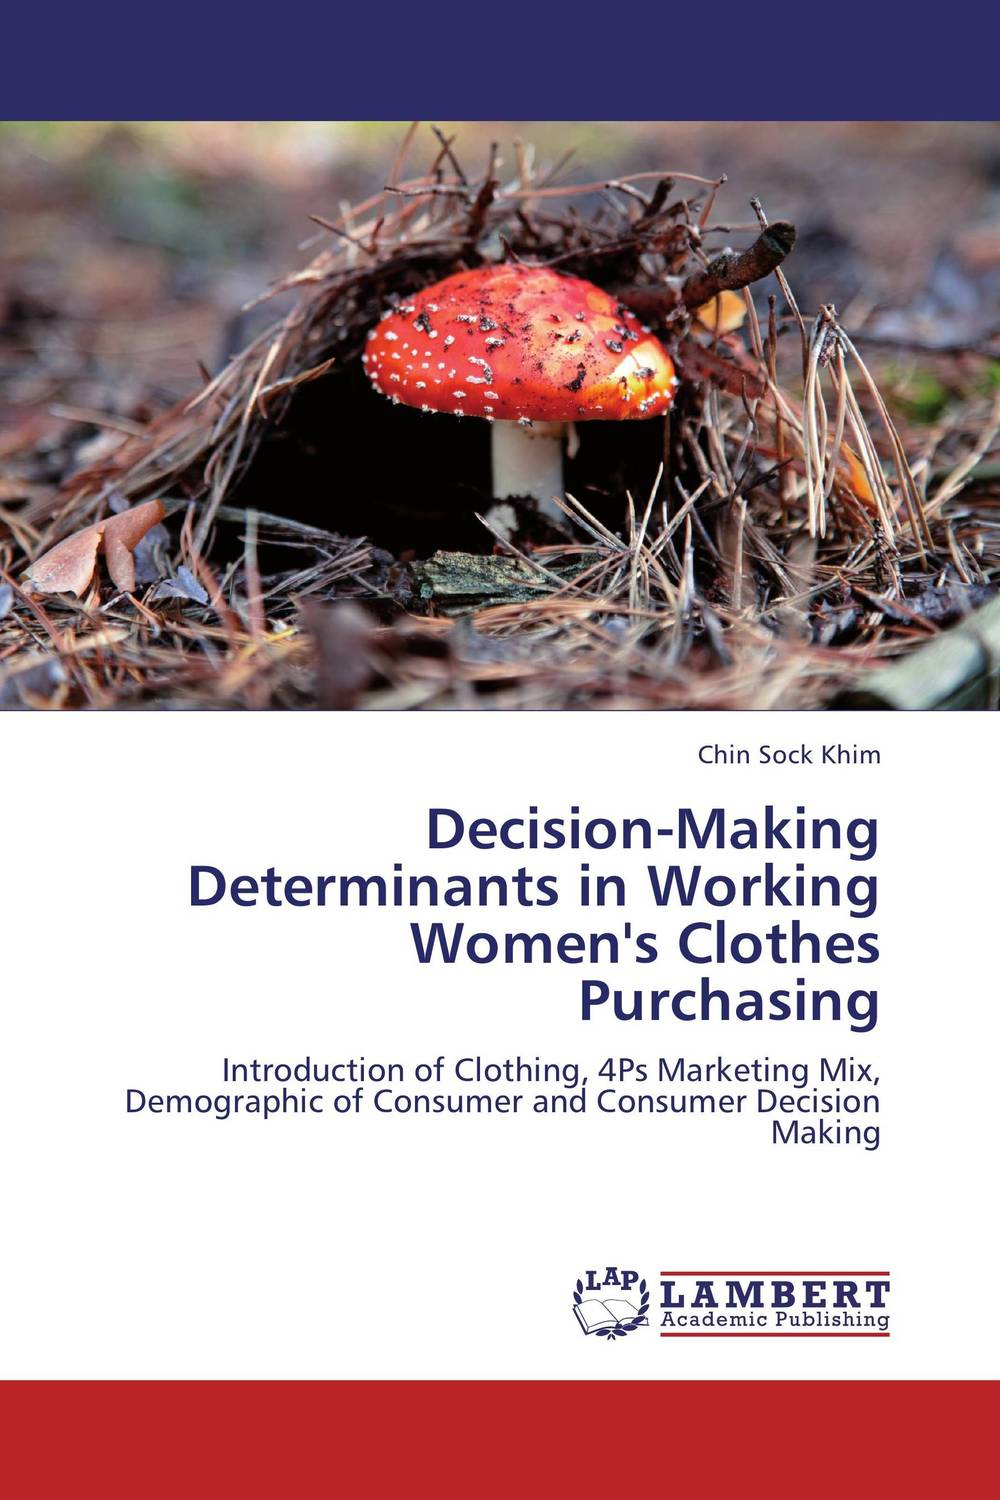 Decision-Making Determinants in Working Women's Clothes Purchasing eric holtzclaw v laddering unlocking the potential of consumer behavior